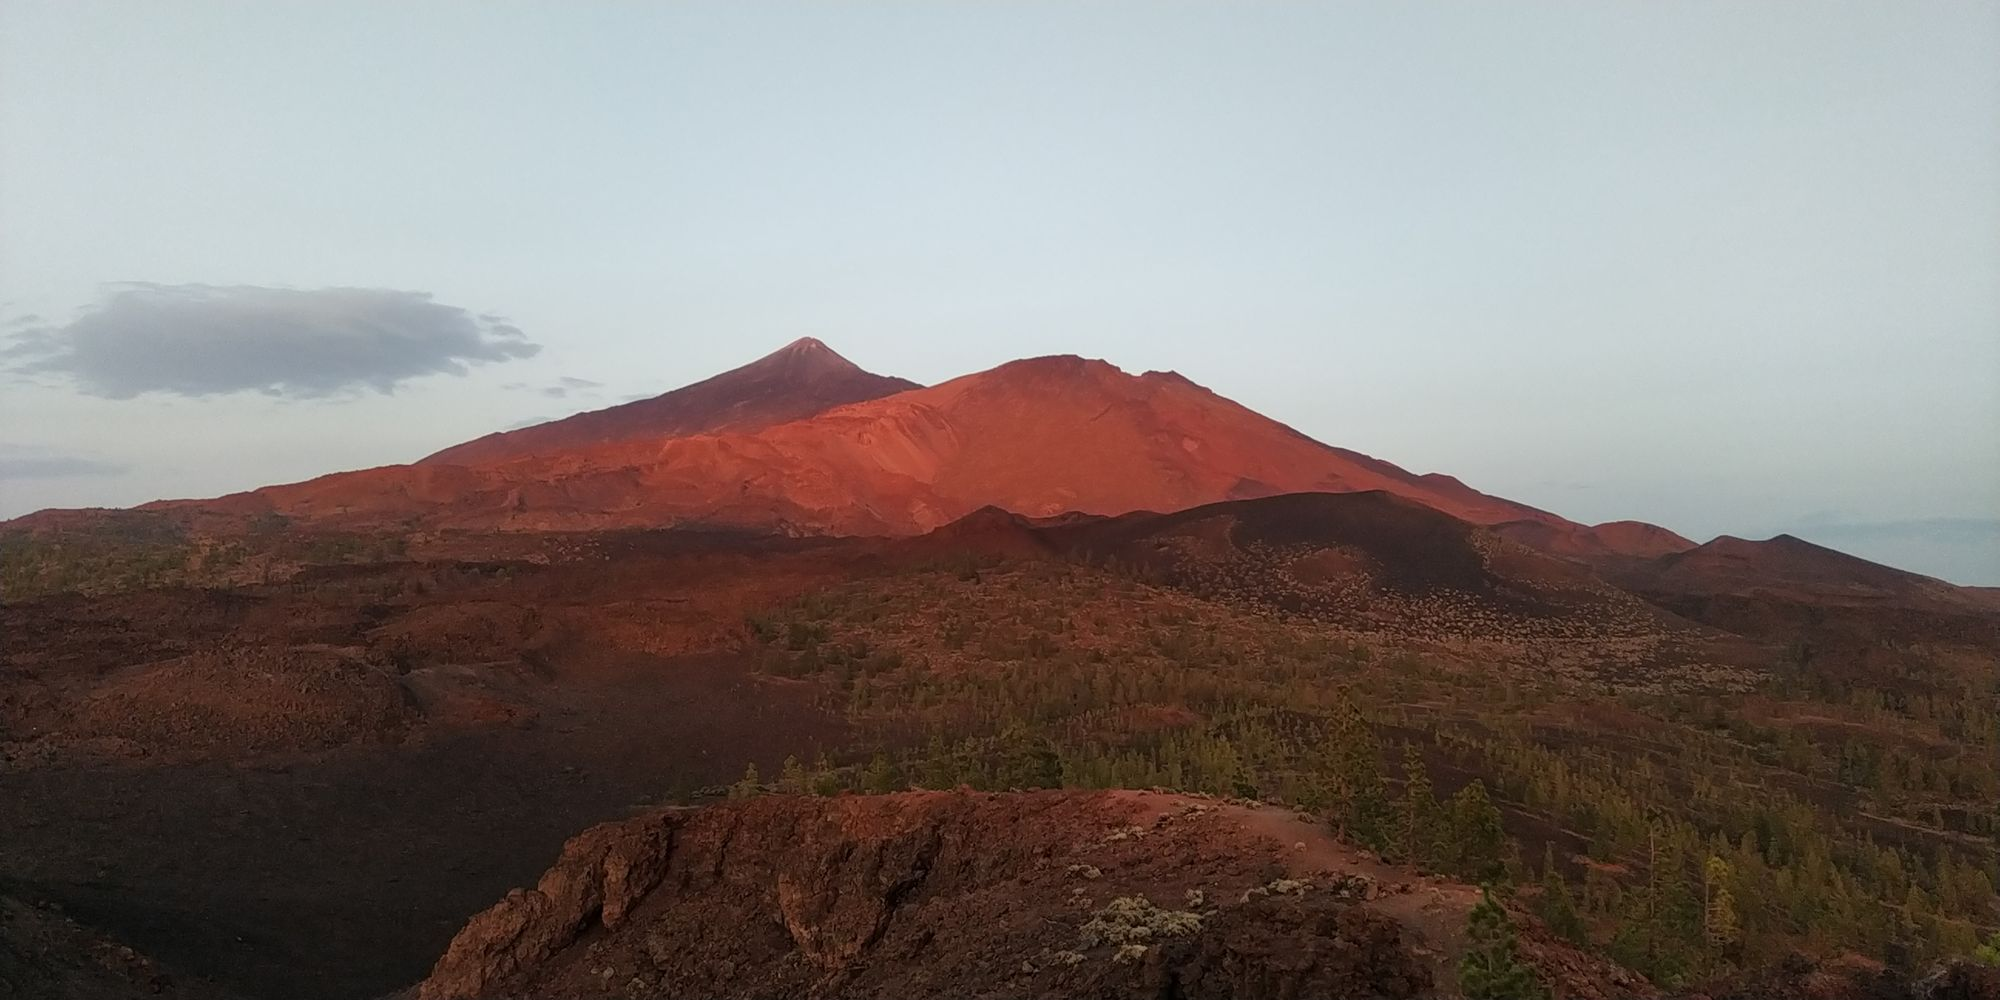 Picture of a sunset with views on the Teide volcano. Unrelated to the main topic, but just to do a break.